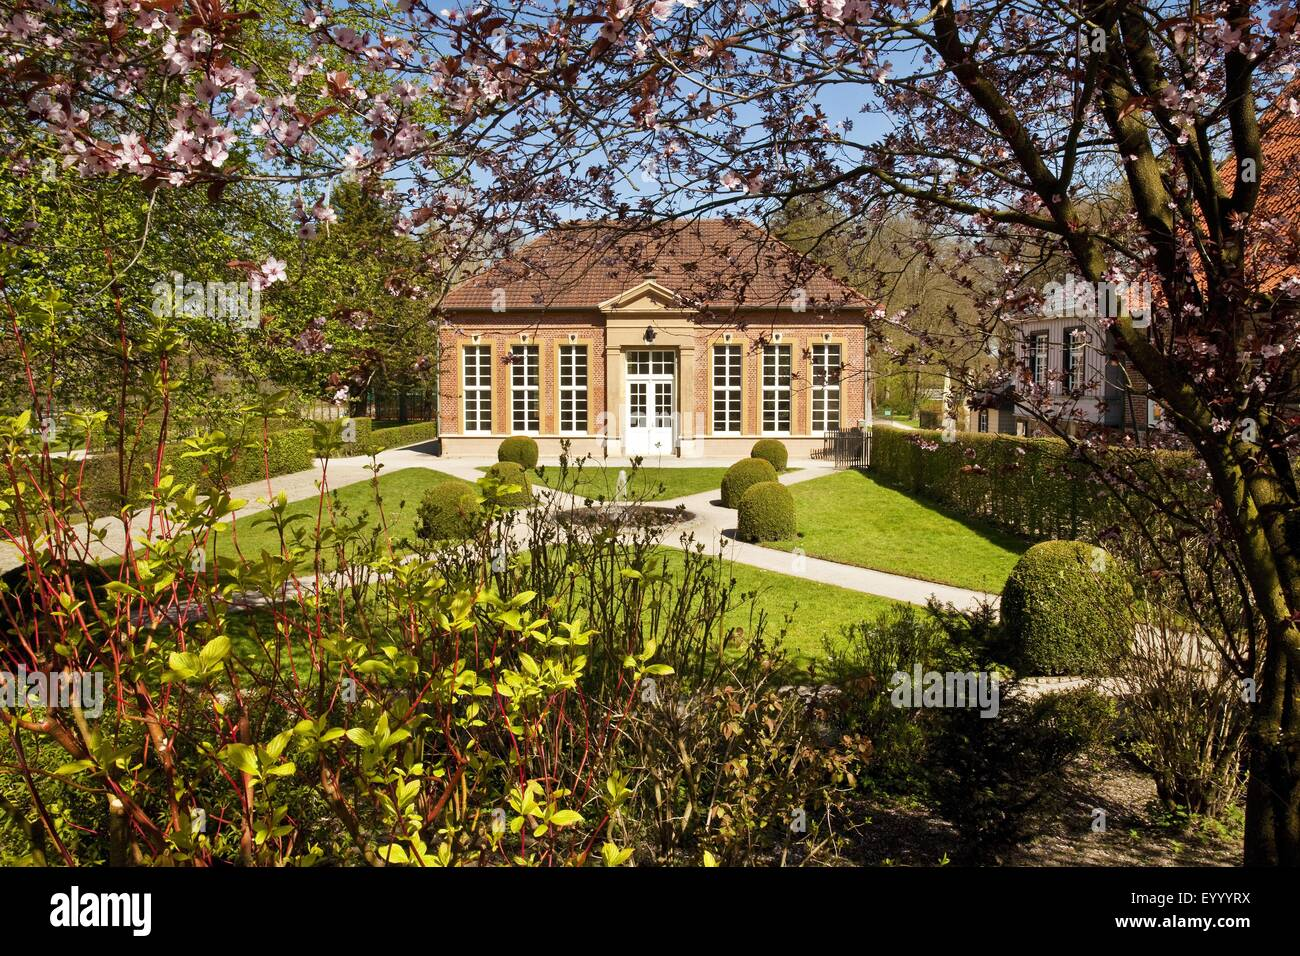 Castle Rheda, orangery in the palace garden, Germany, North Rhine-Westphalia, East Westphalia, Rheda-Wiedenbrueck - Stock Image